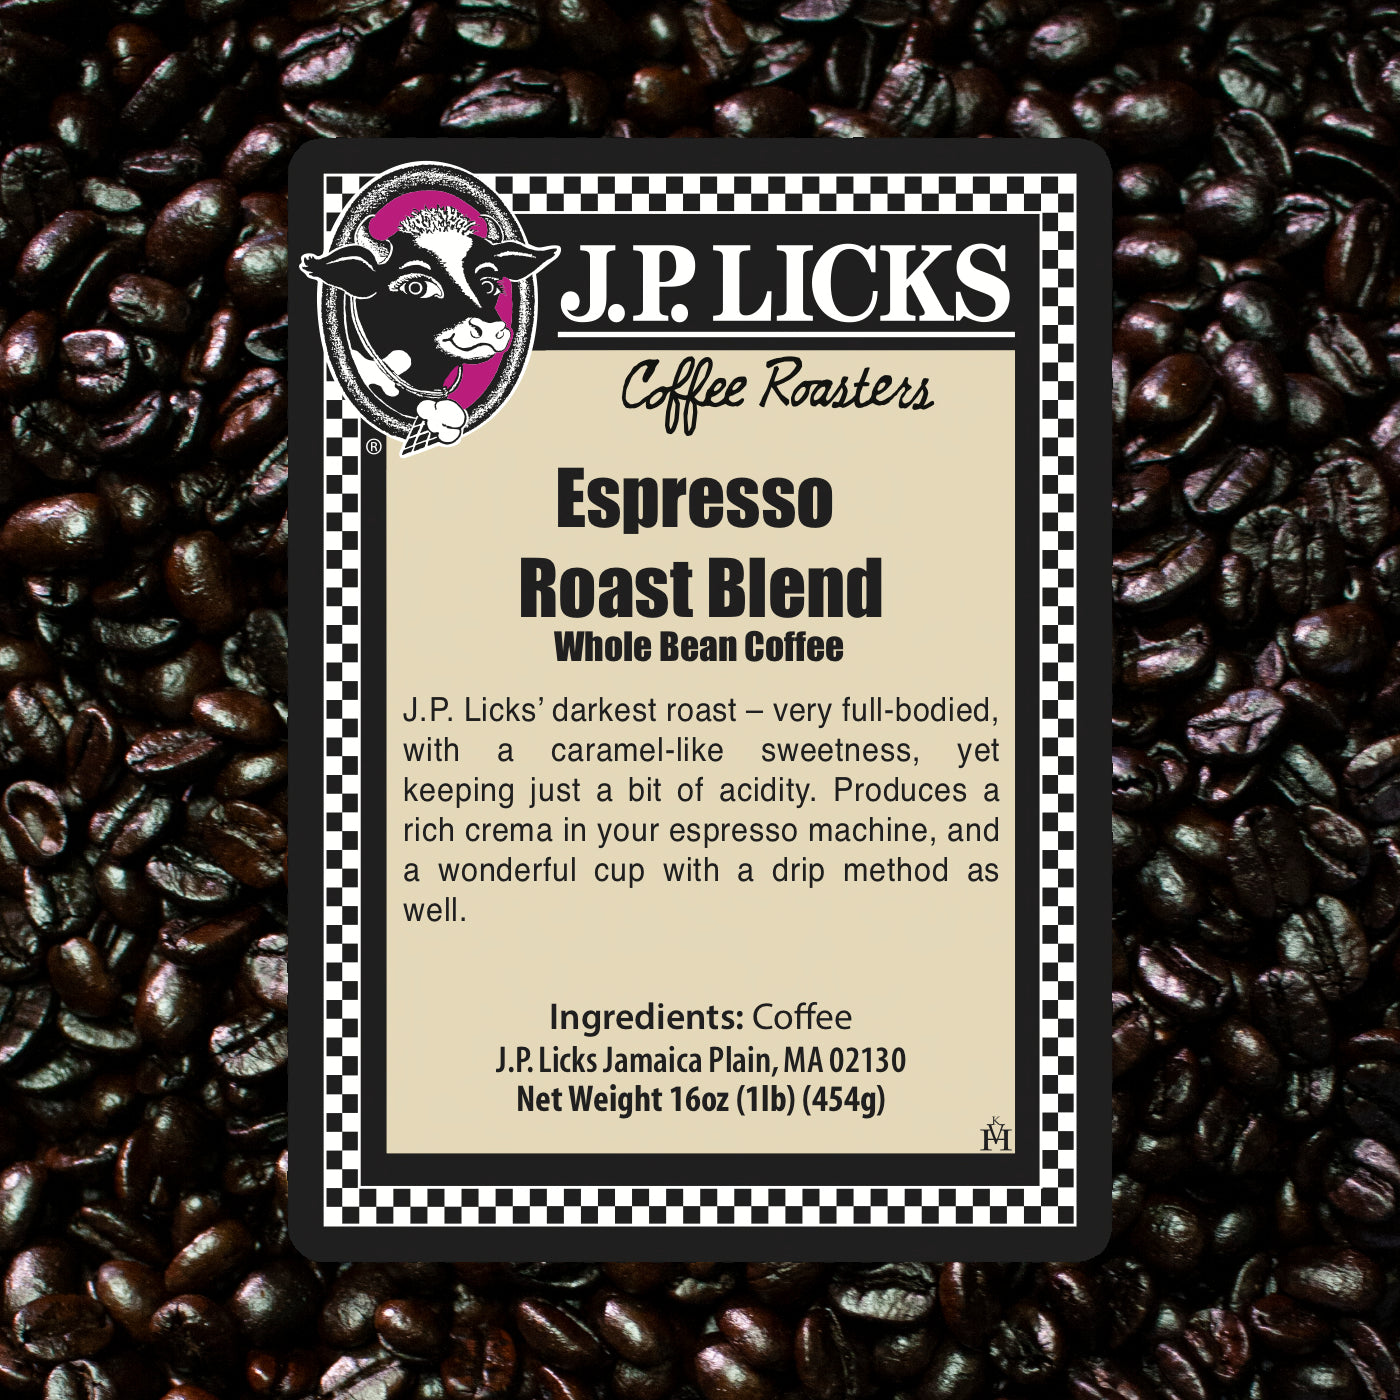 JP Licks Espresso Roast Blend Label